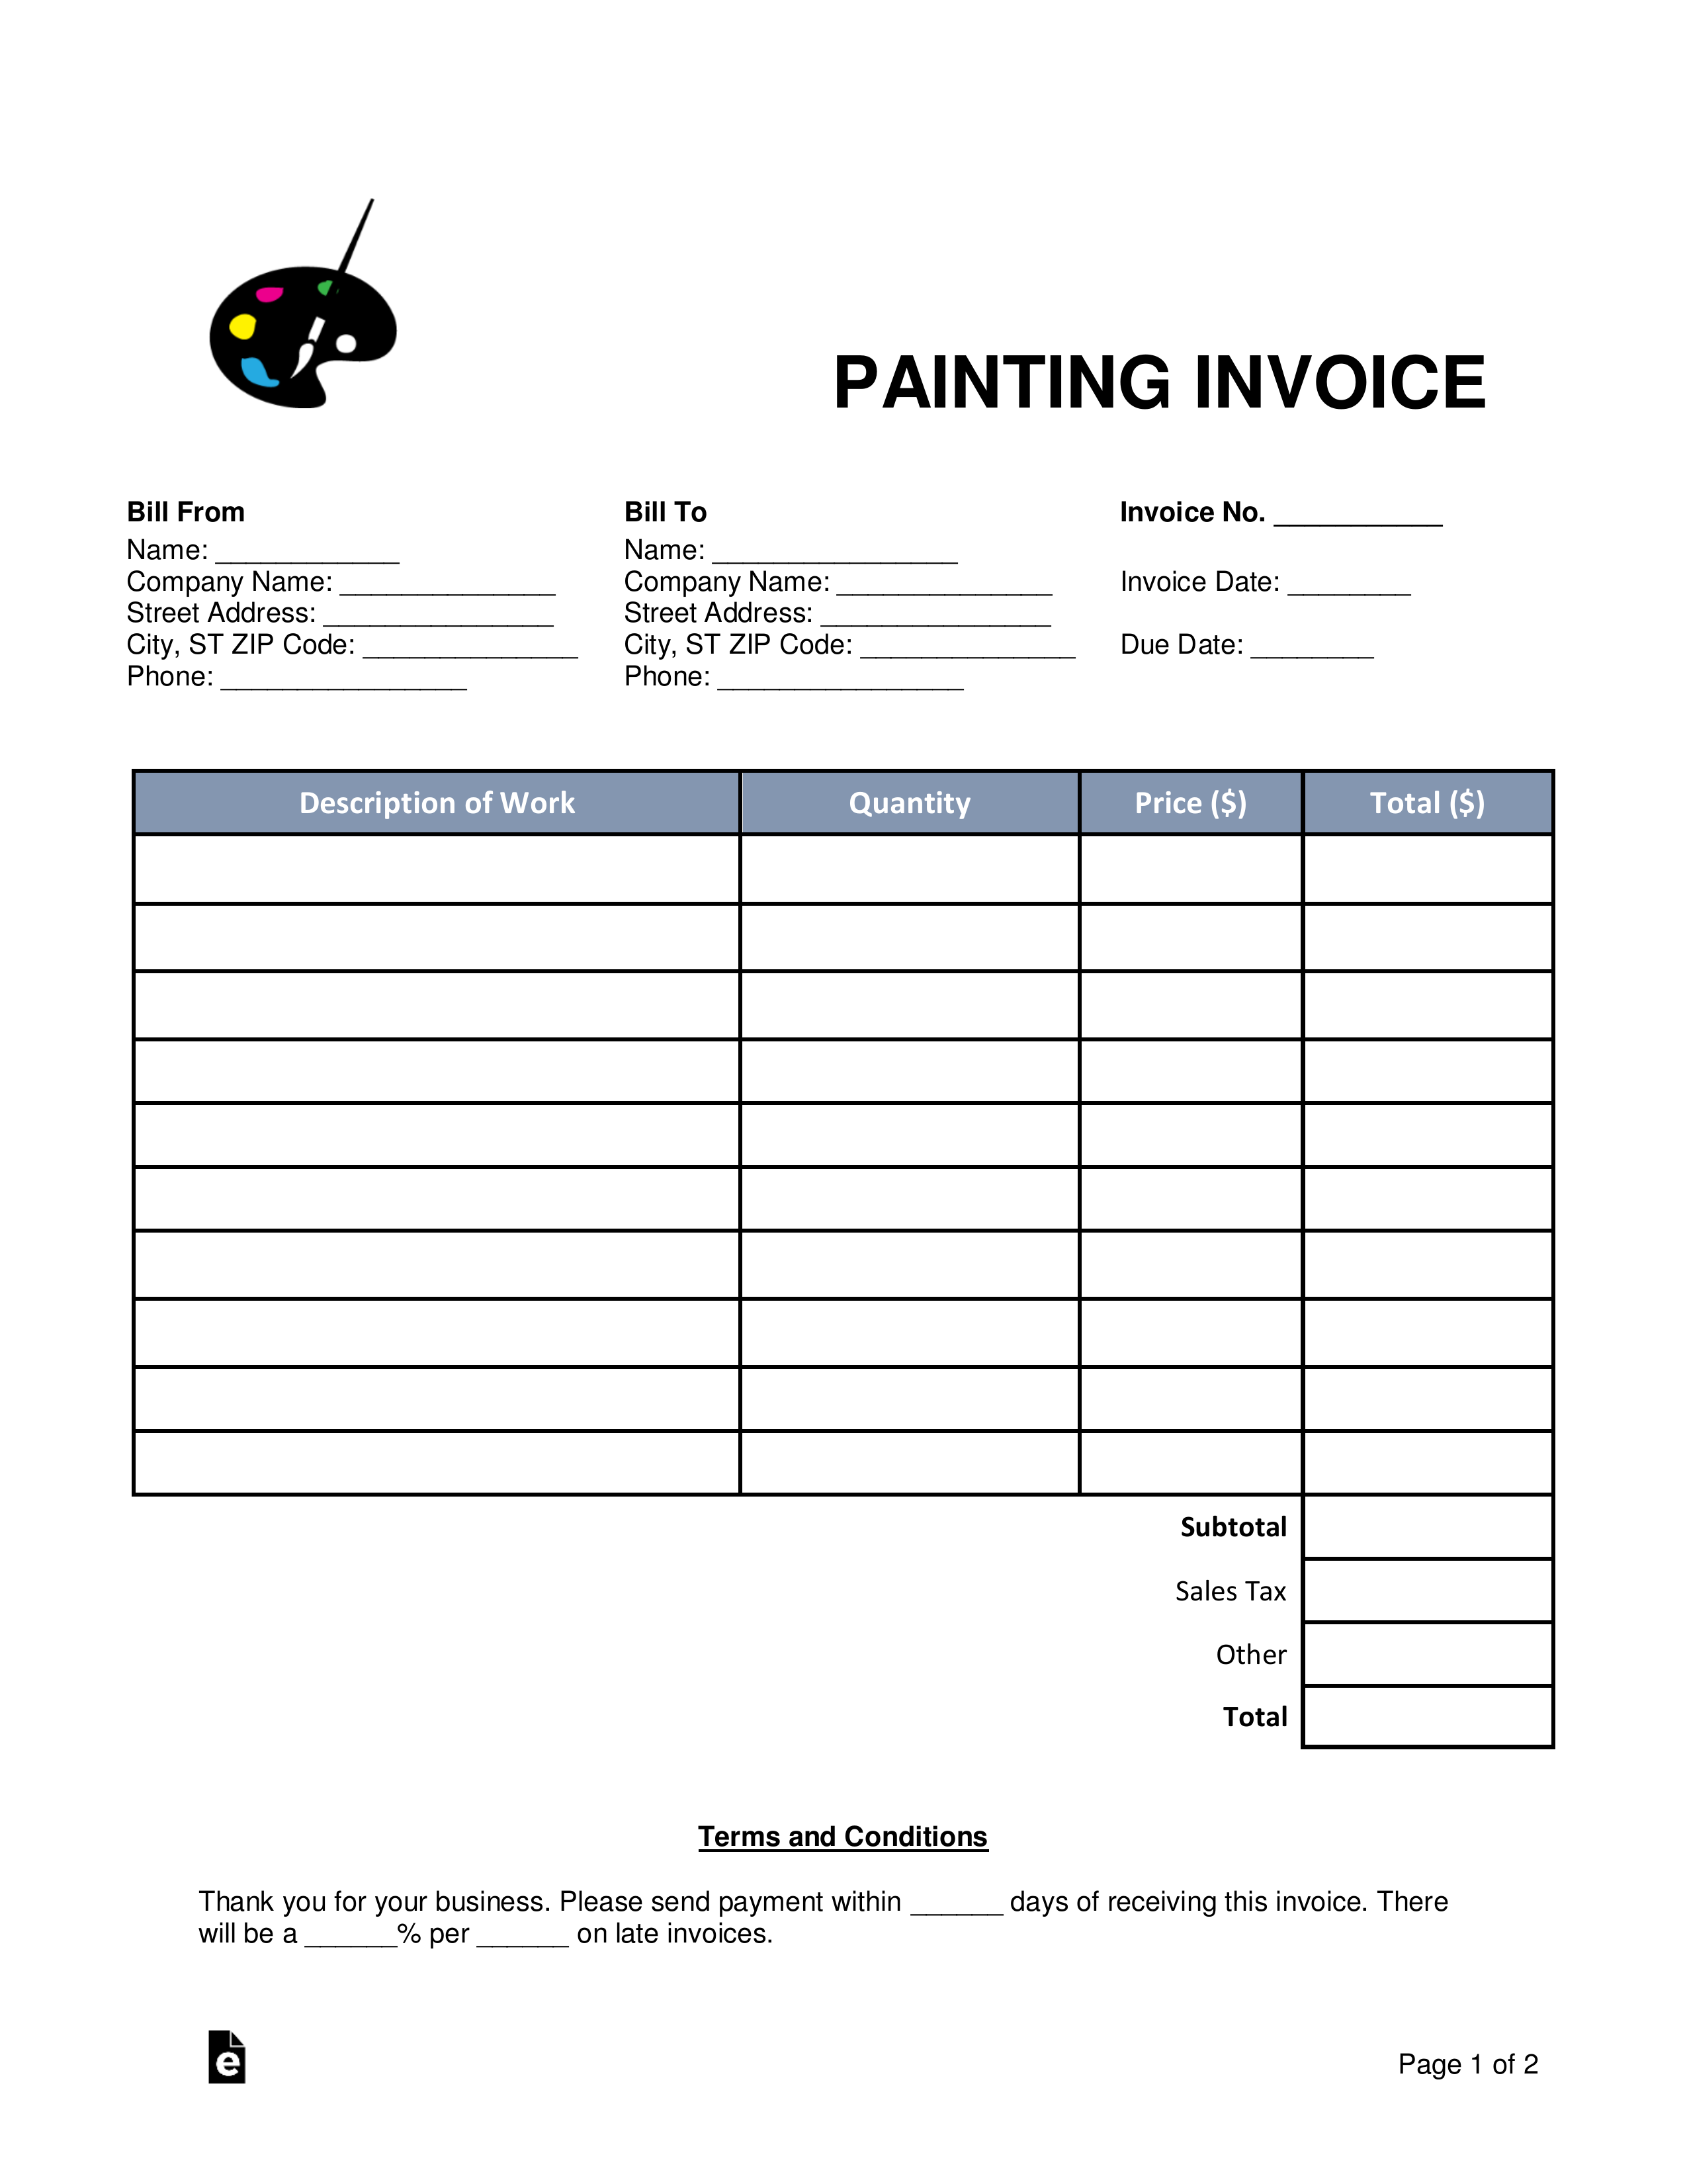 Painting Invoice Template